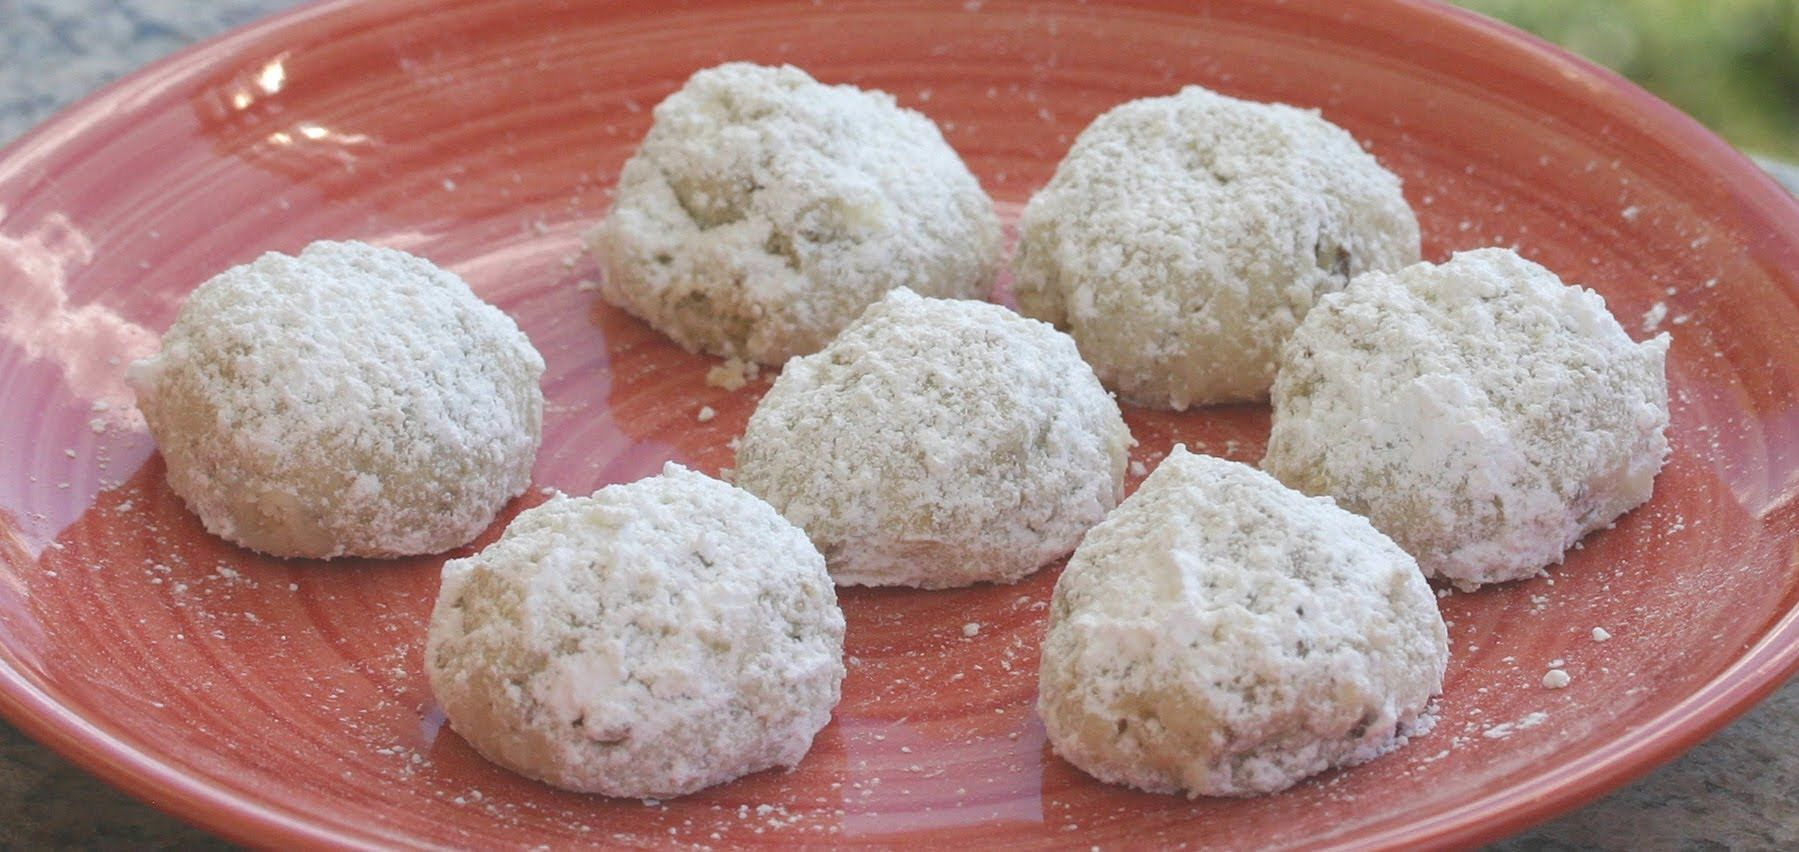 How To Make Mexican Wedding Cookies Snowball Cookies With Pecans By Rockin Robin Bloopers Wedding Cookies Mexican Wedding Cake Mexican Wedding Cake Recipe